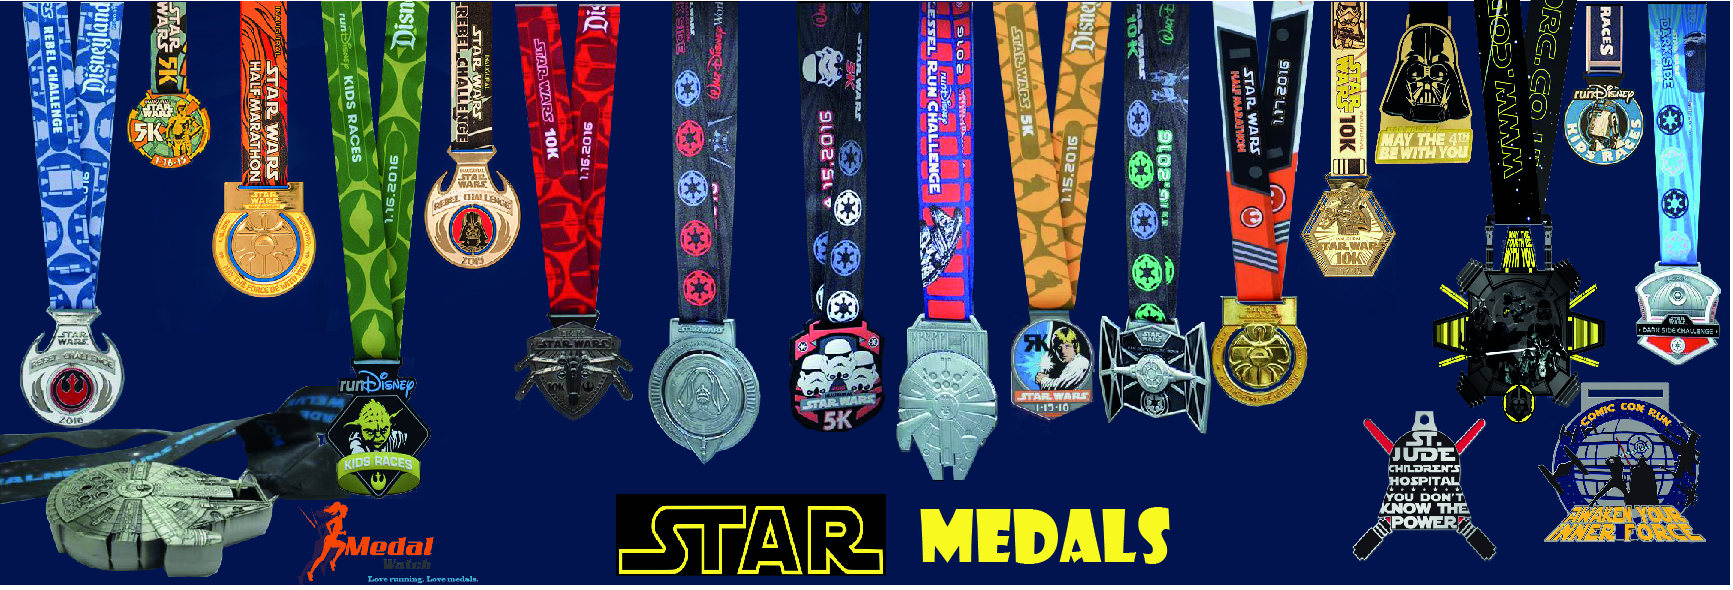 Over 1,000 medals in our archive gallery